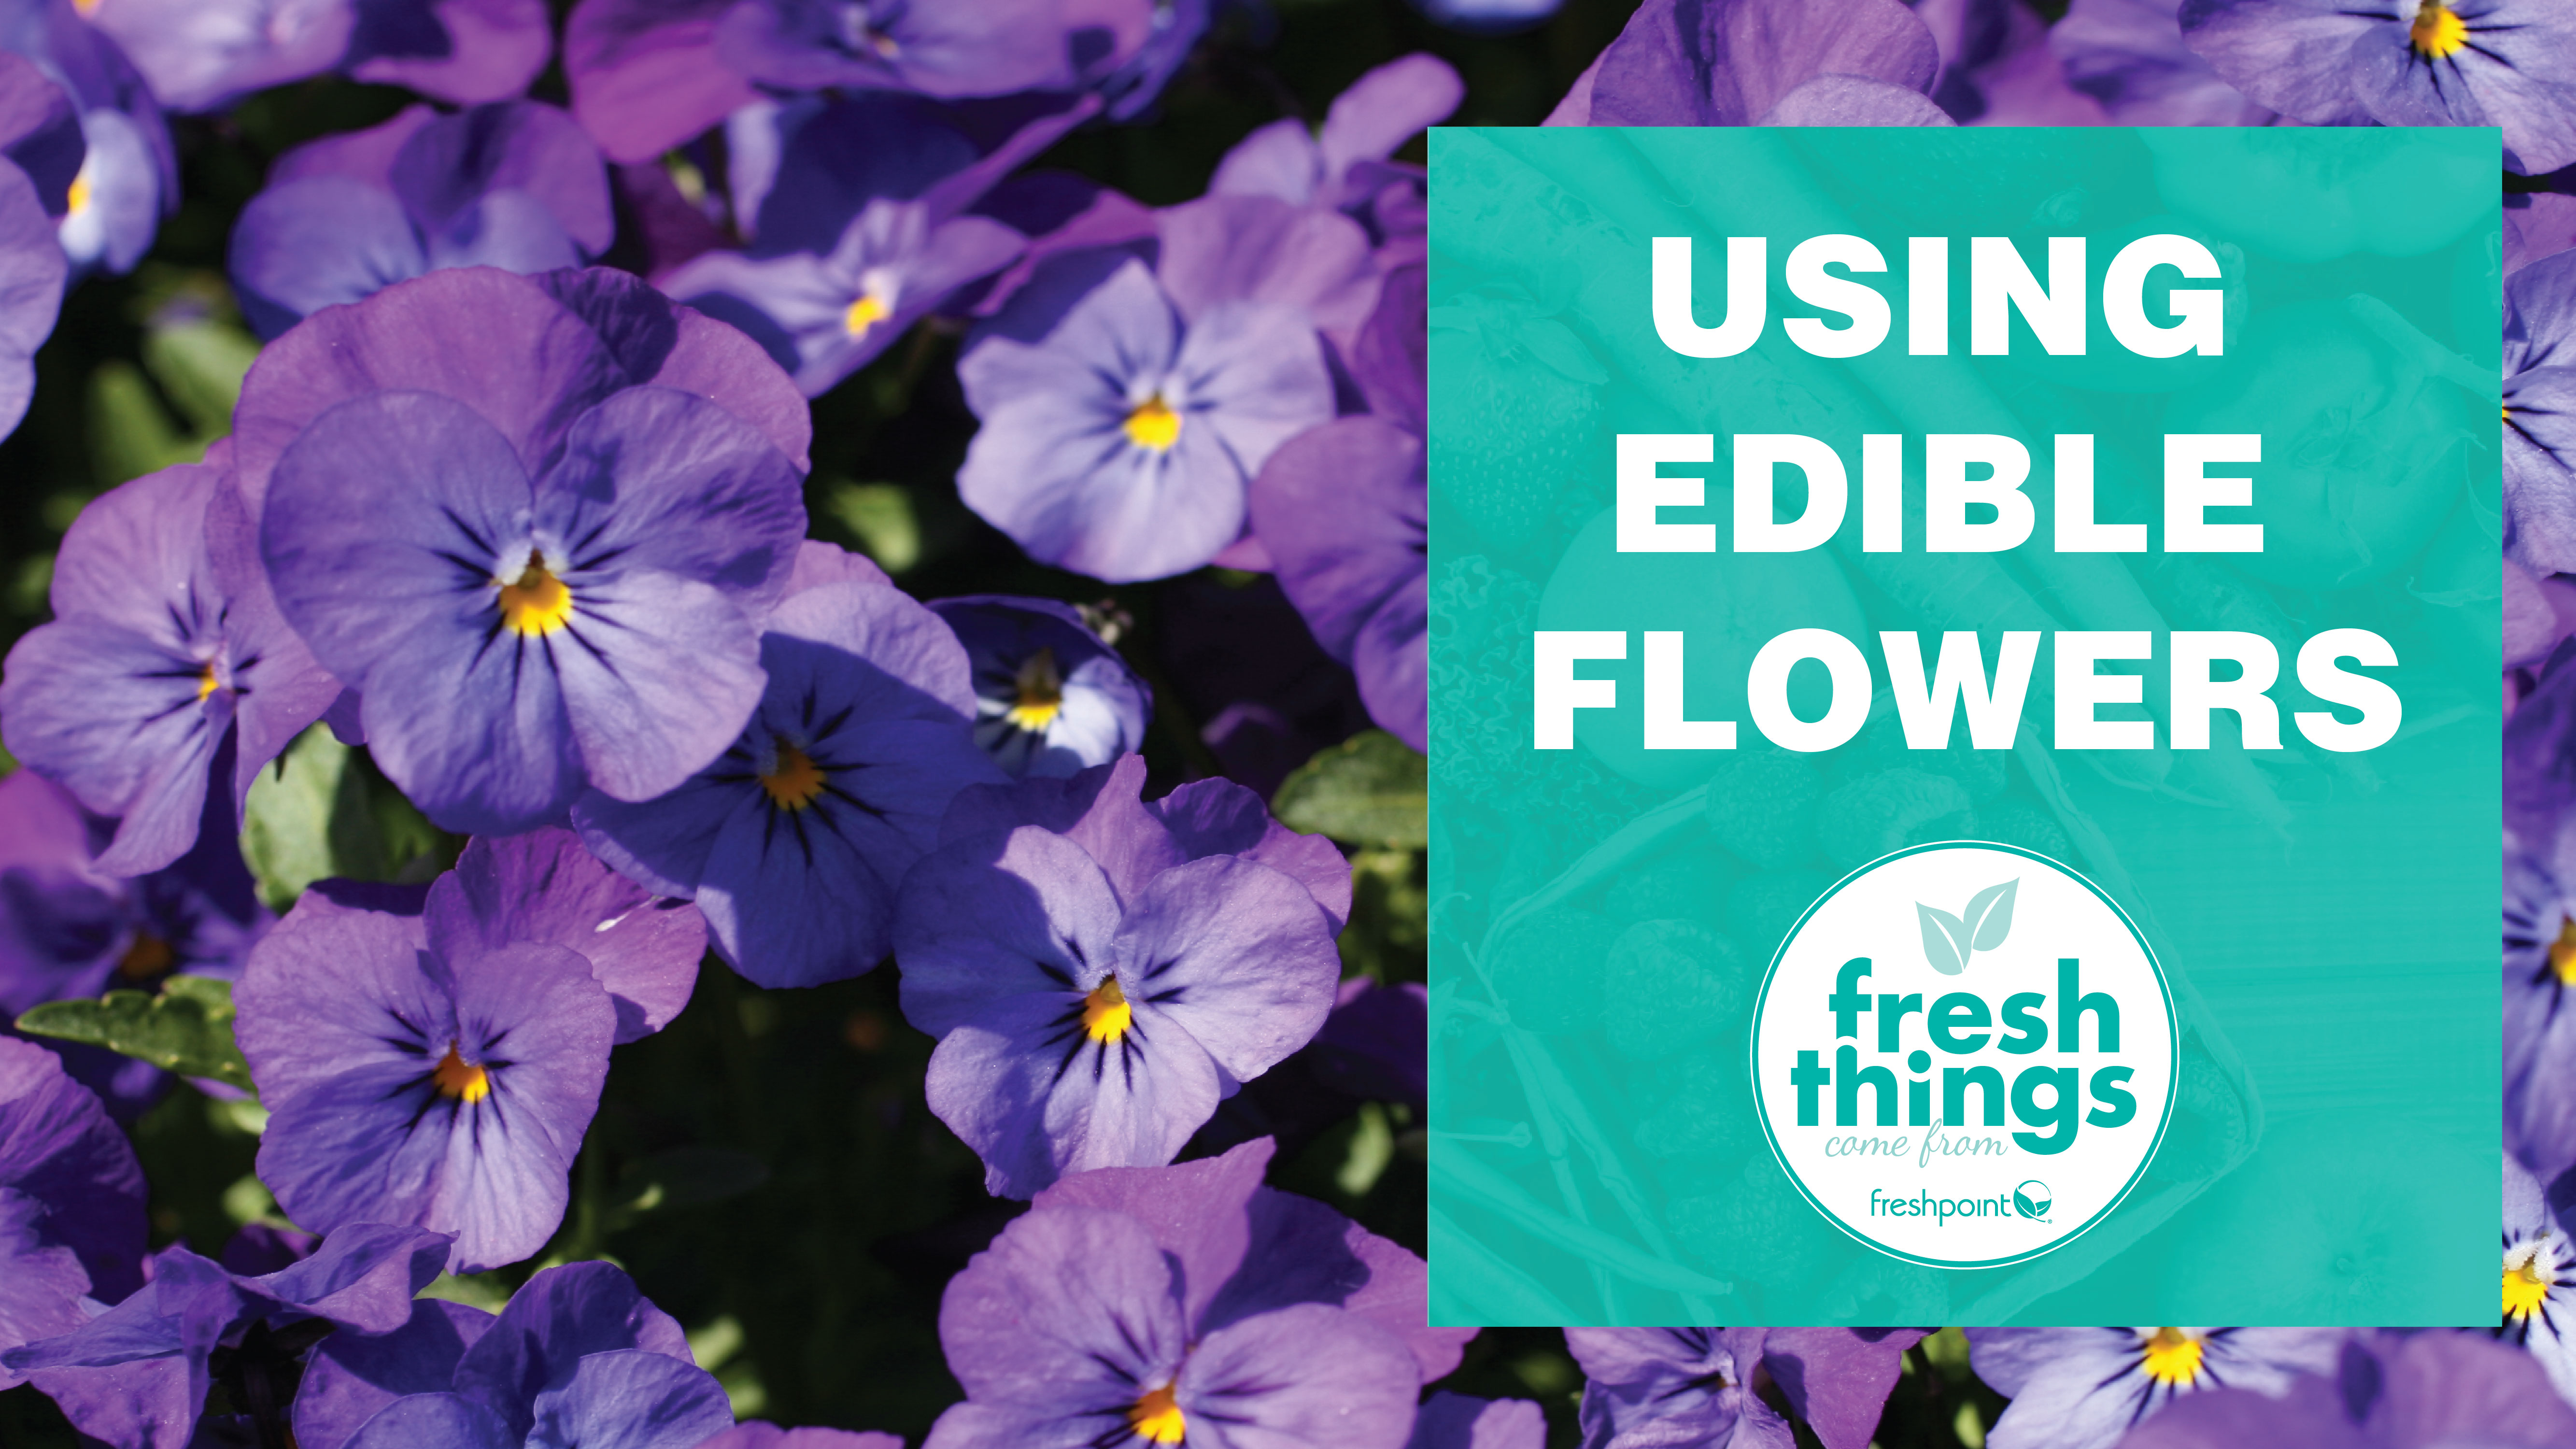 freshpoint-produce-edible-flowers